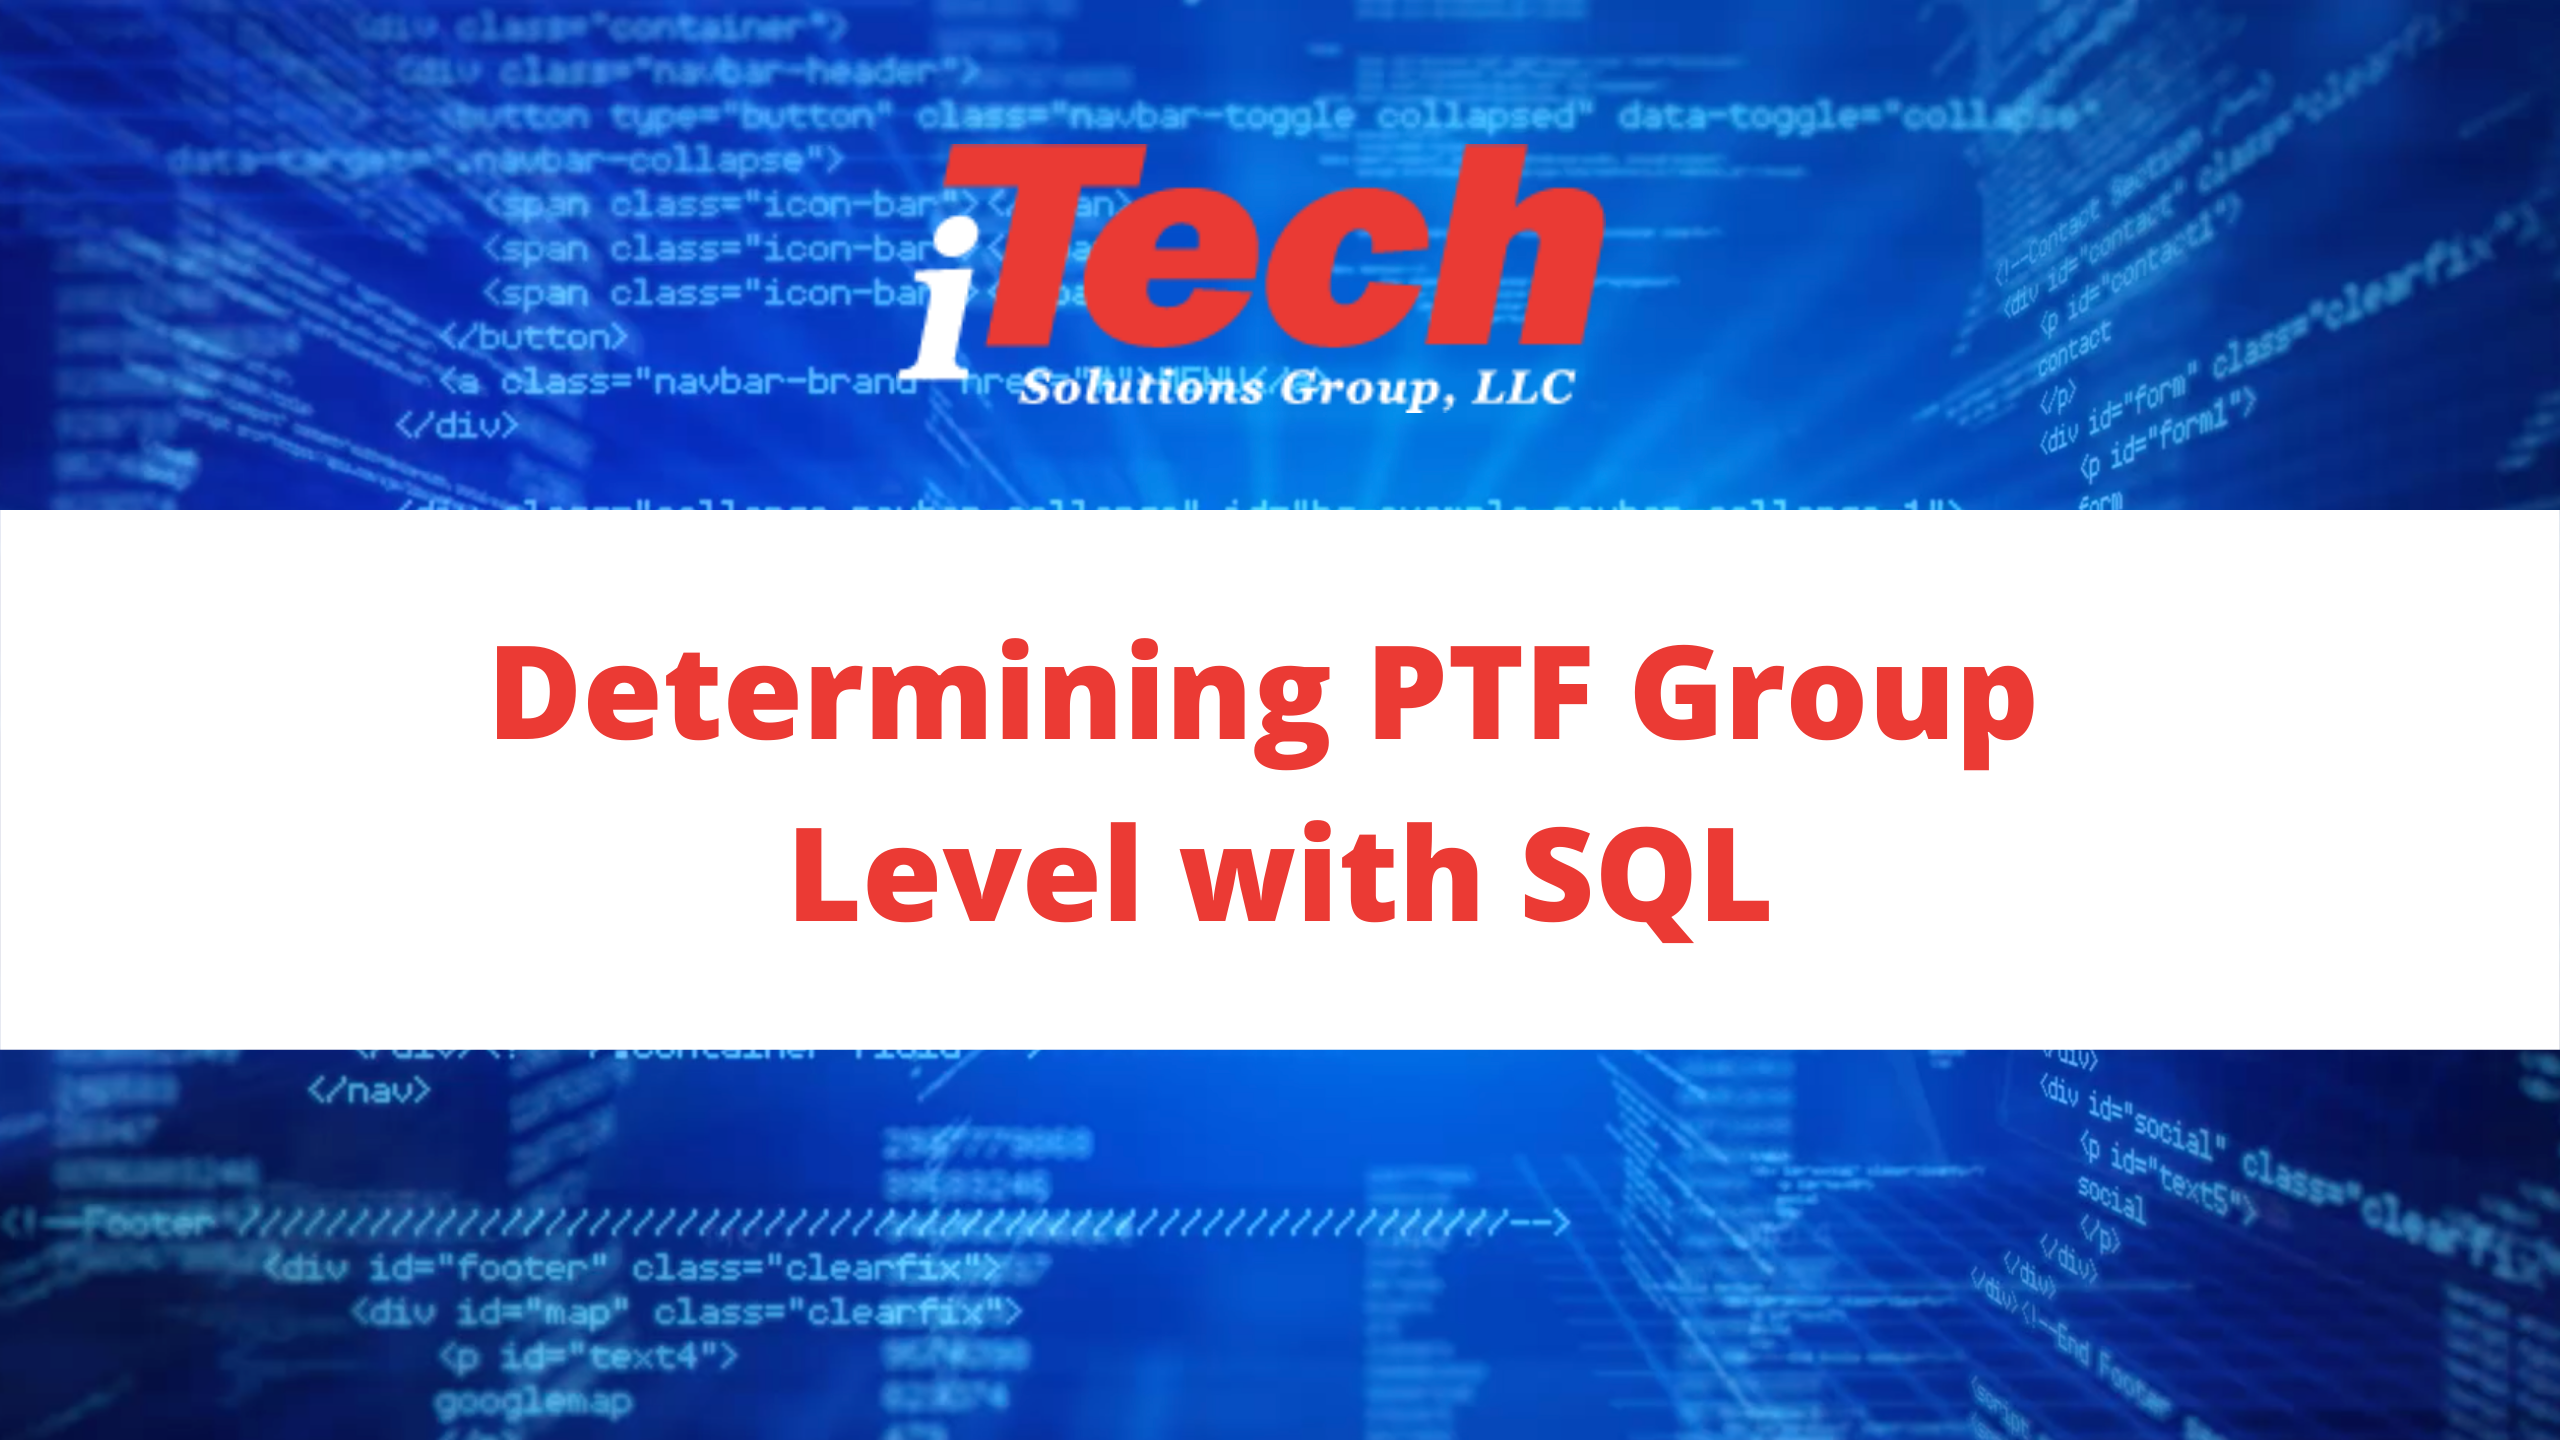 Determining PTF Group Level with SQL